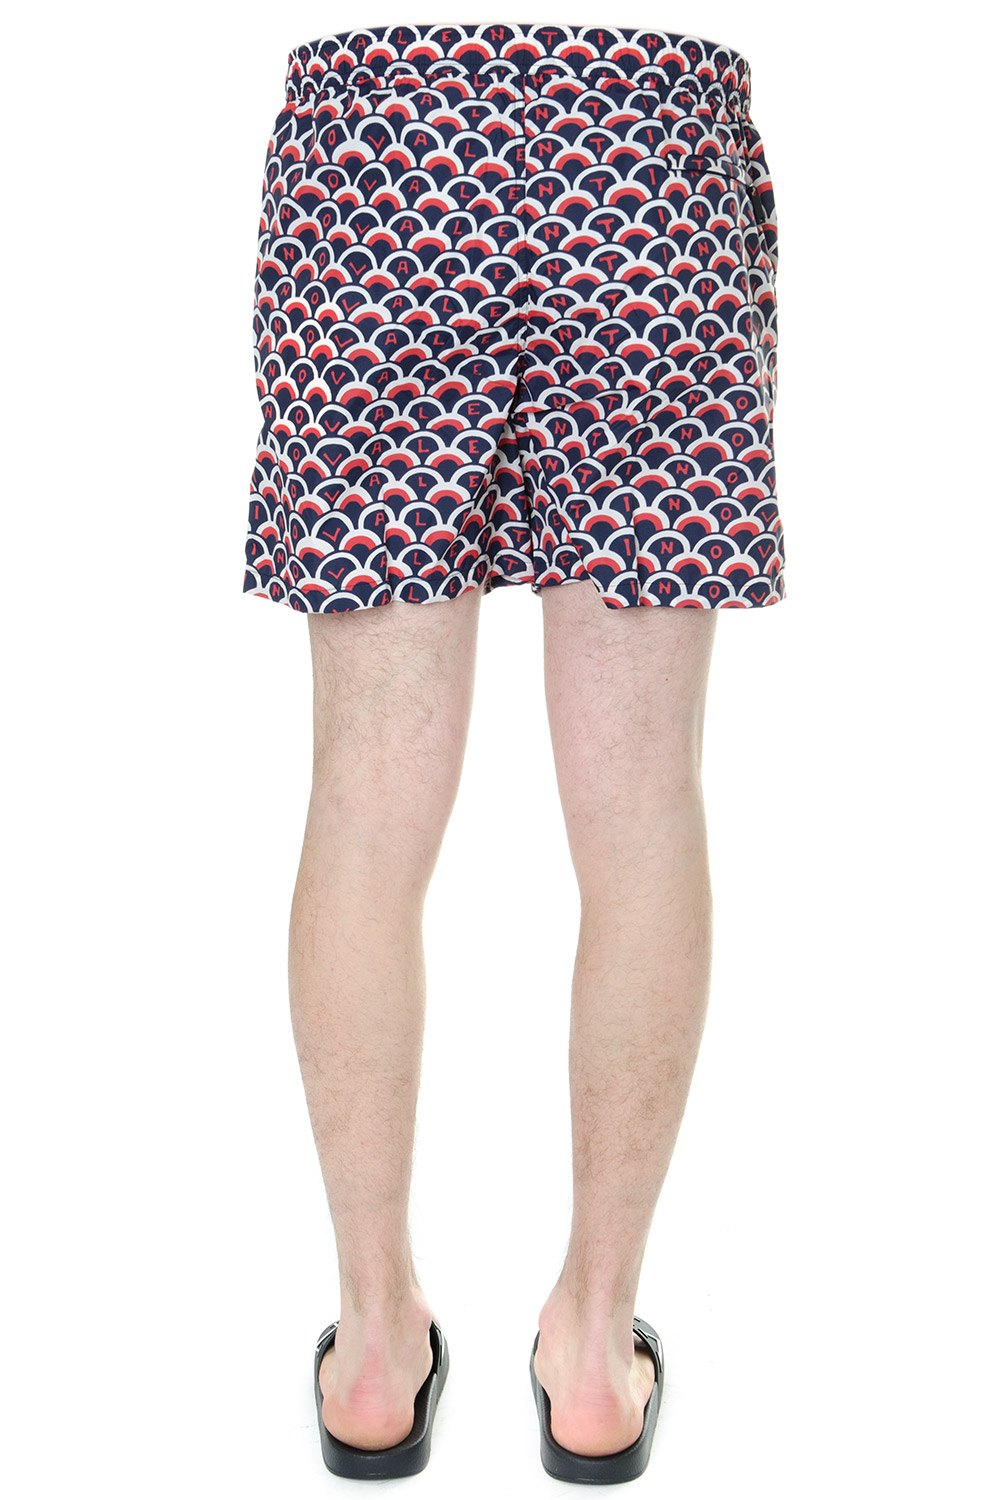 632ebd97e31 BLU AND RED OPTICAL PRINTED SWIM SHORTS SS 2019 - VALENTINO ...